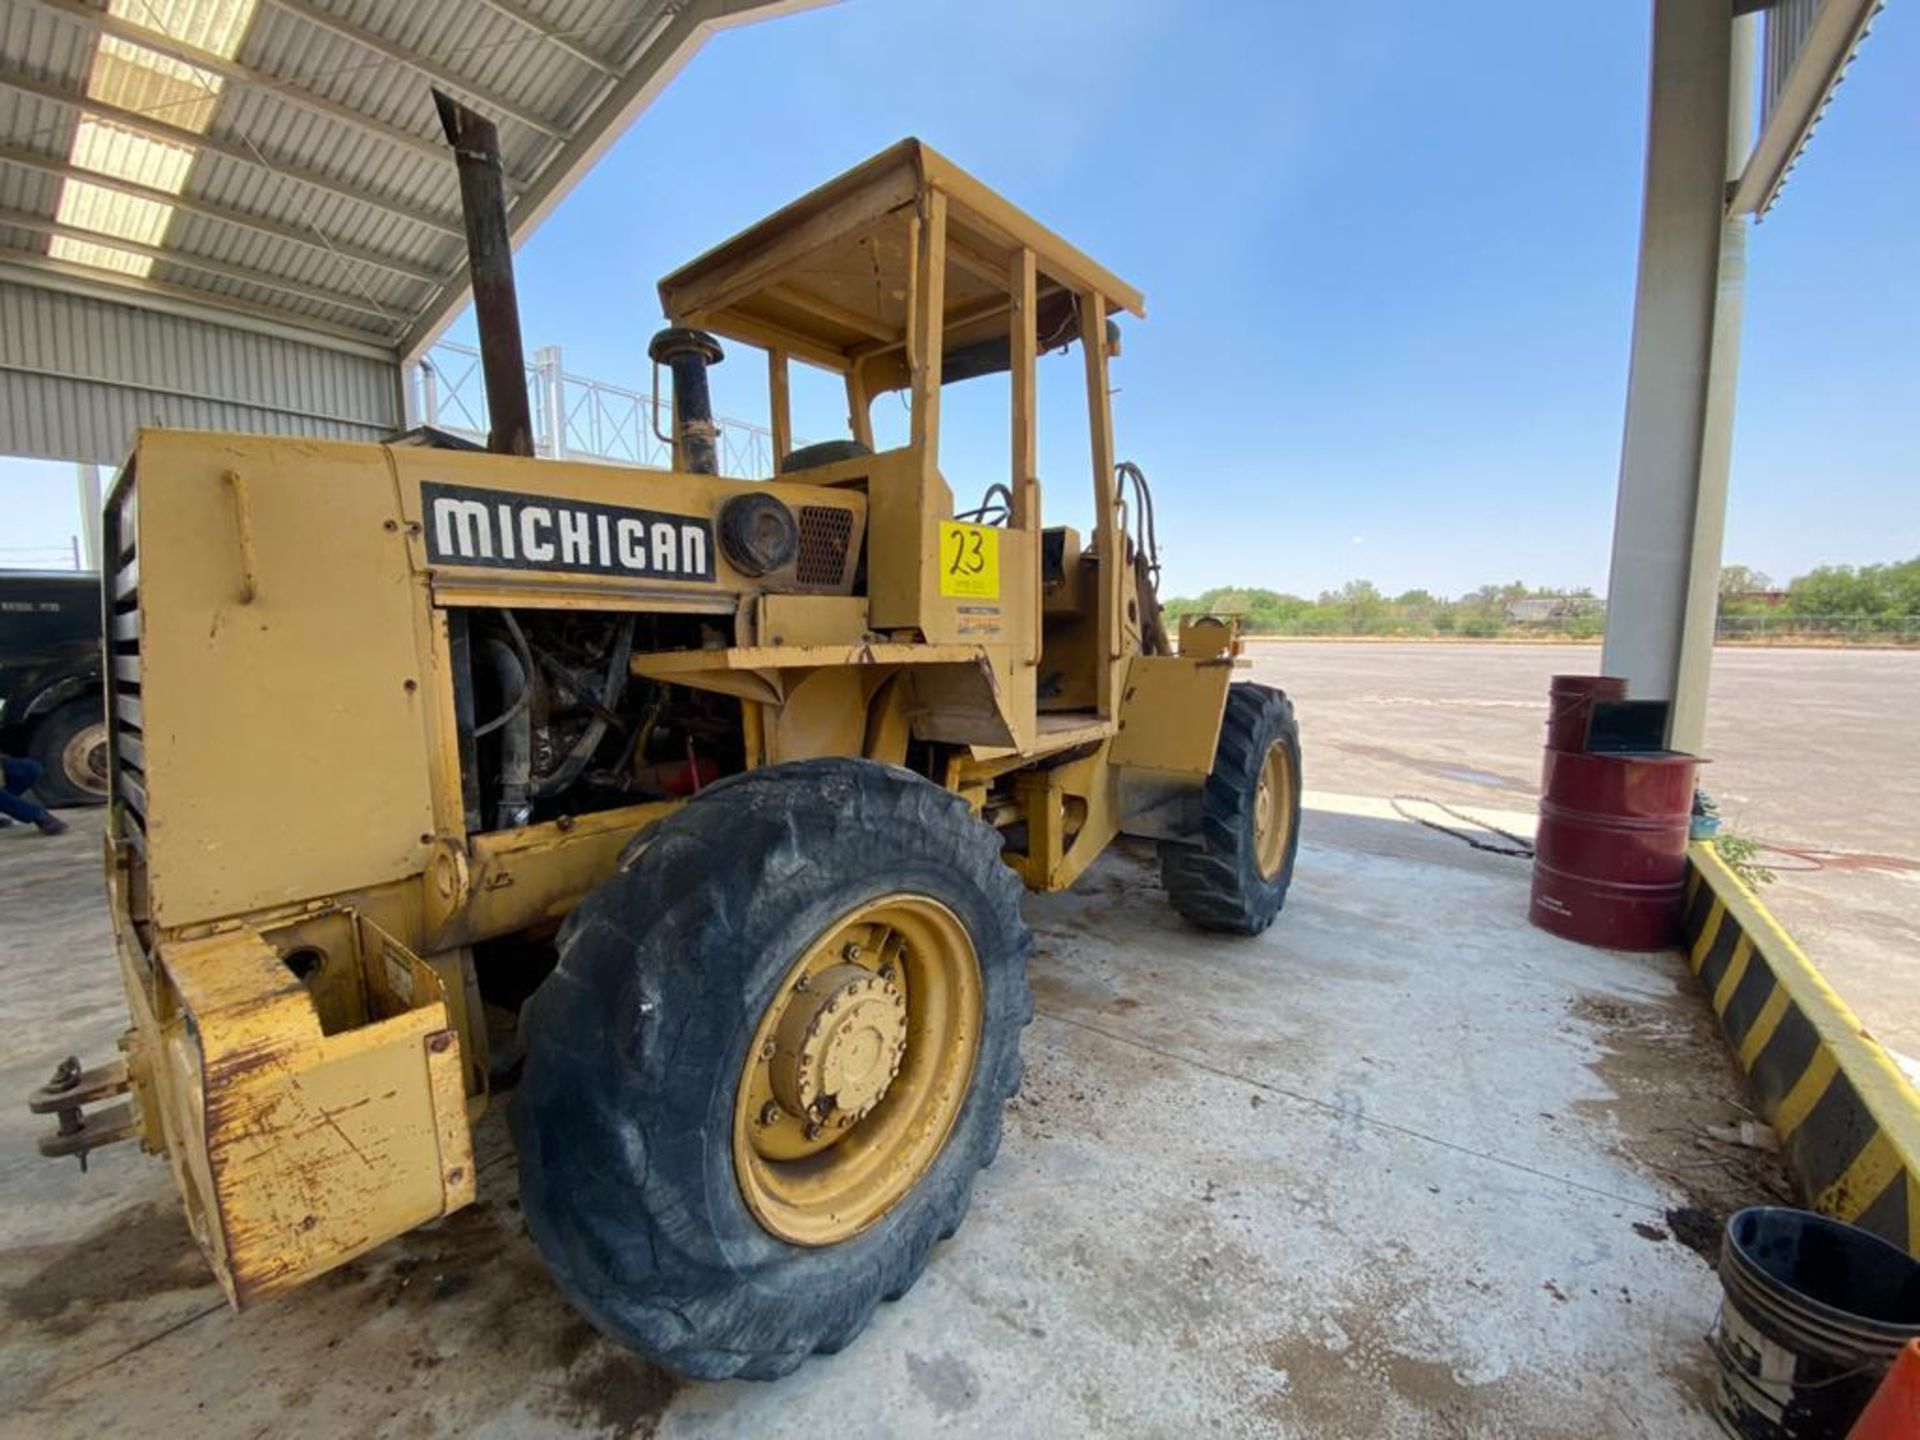 Volvo BM TYPE L 30 Michigan Front Loder, automatic transmission - Image 22 of 53